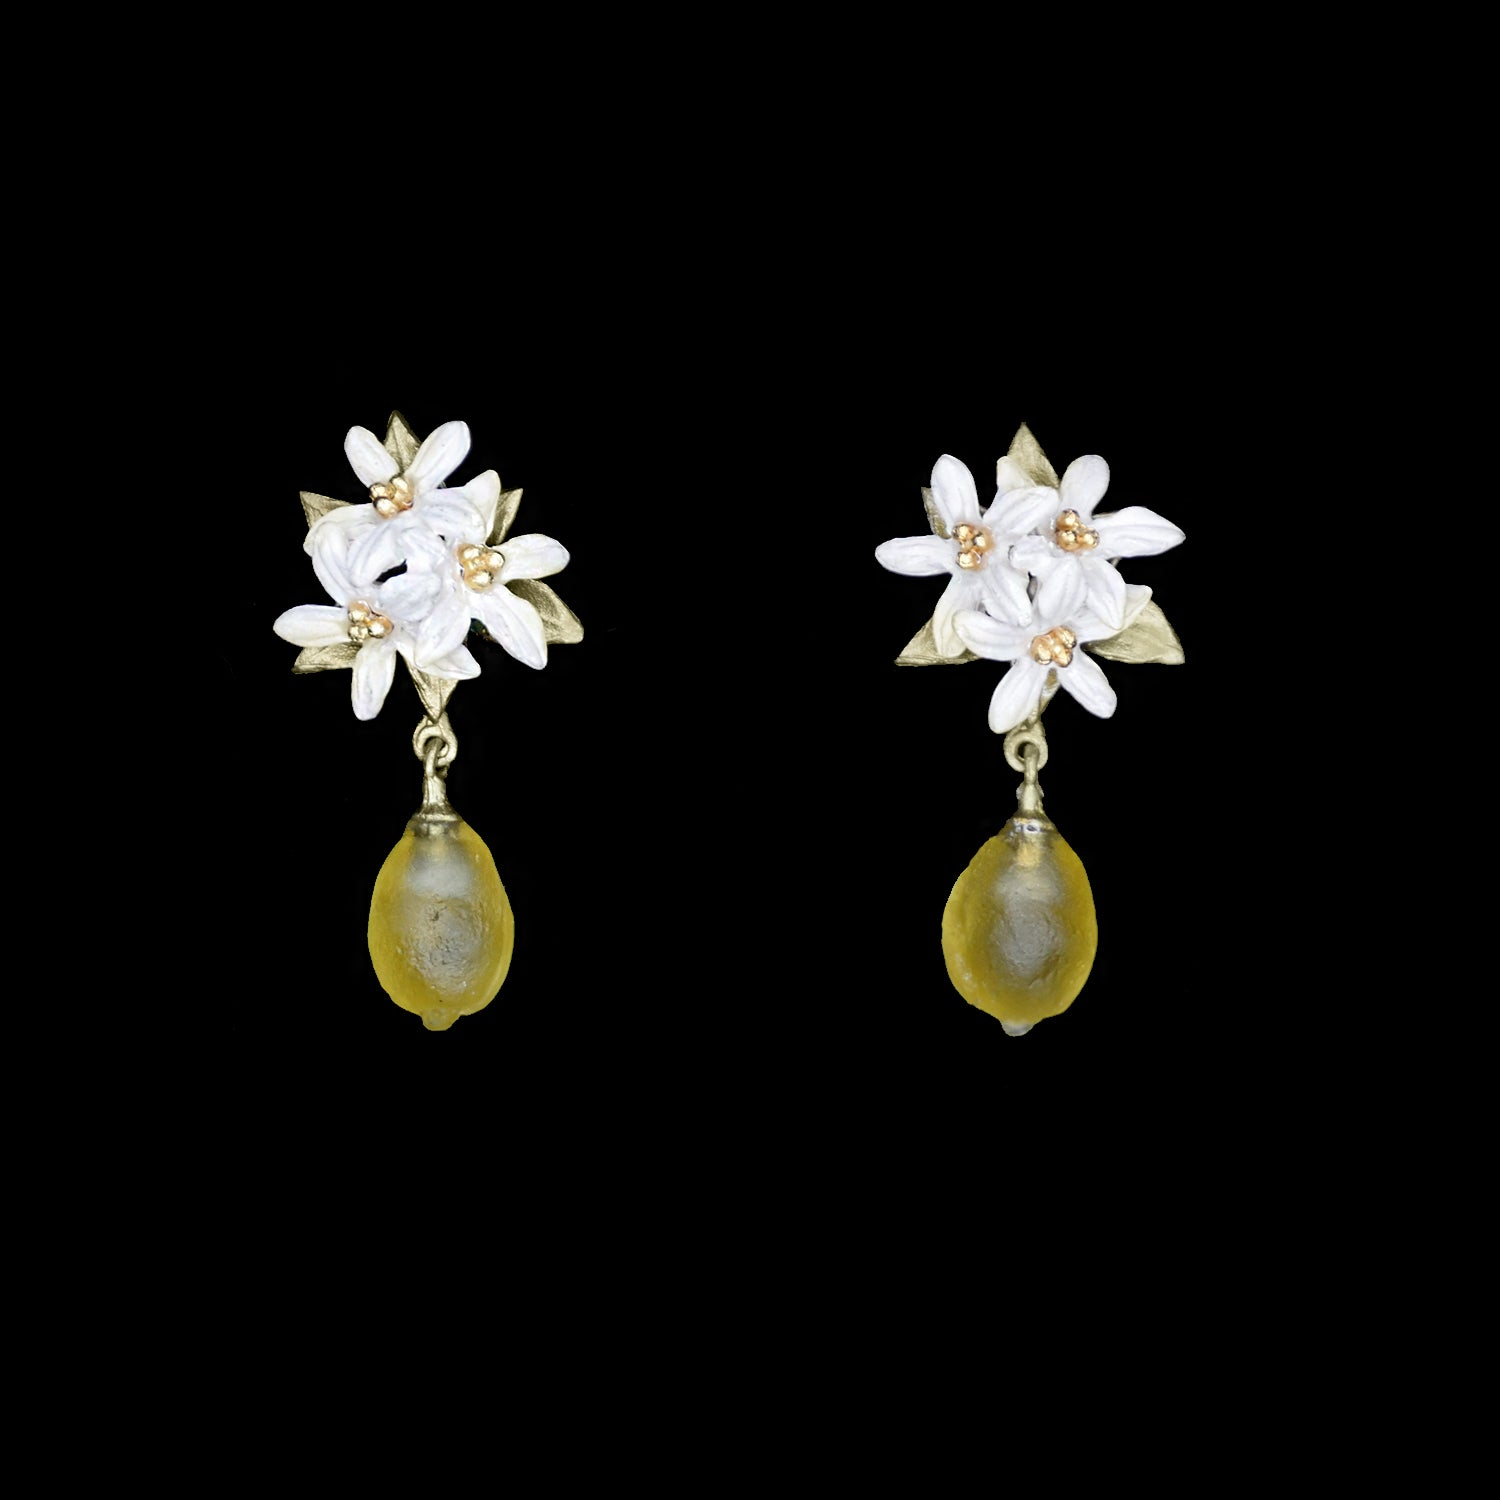 Lemon Drop Earrings - Post